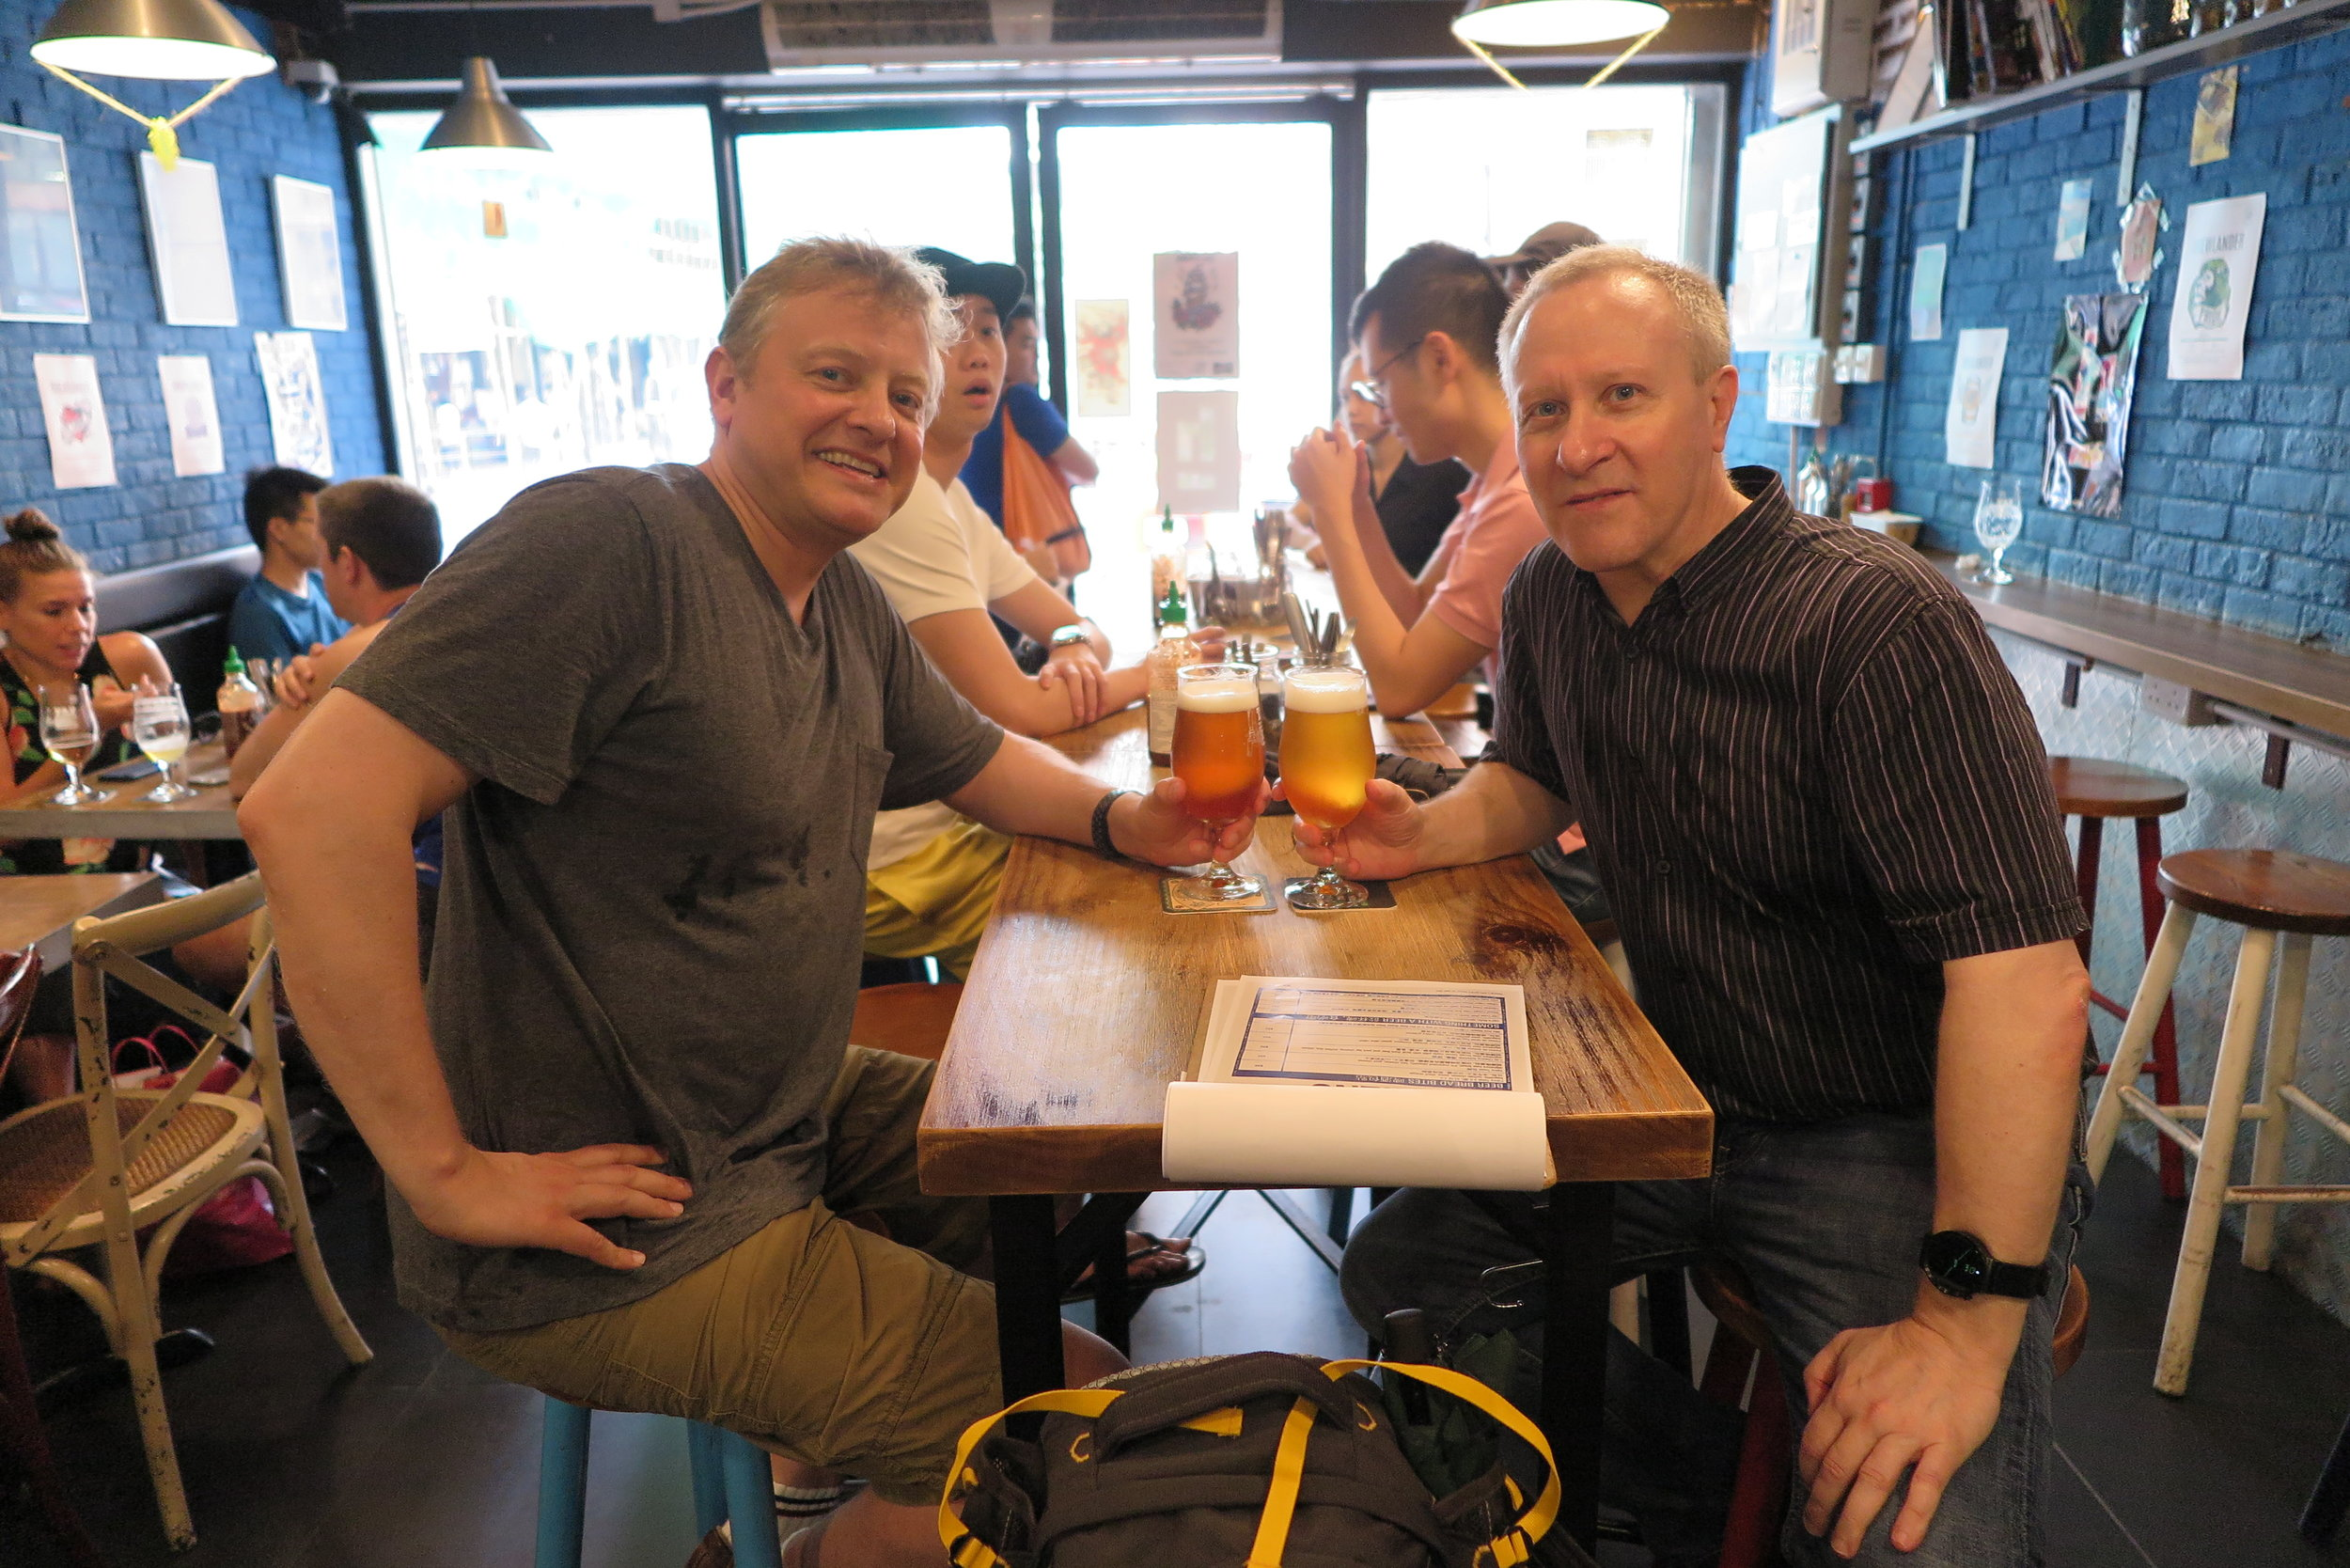 Catching up with old zhongguo tong mate Avron Boretz in a craft beer pub in Mong Kok,Kowloon